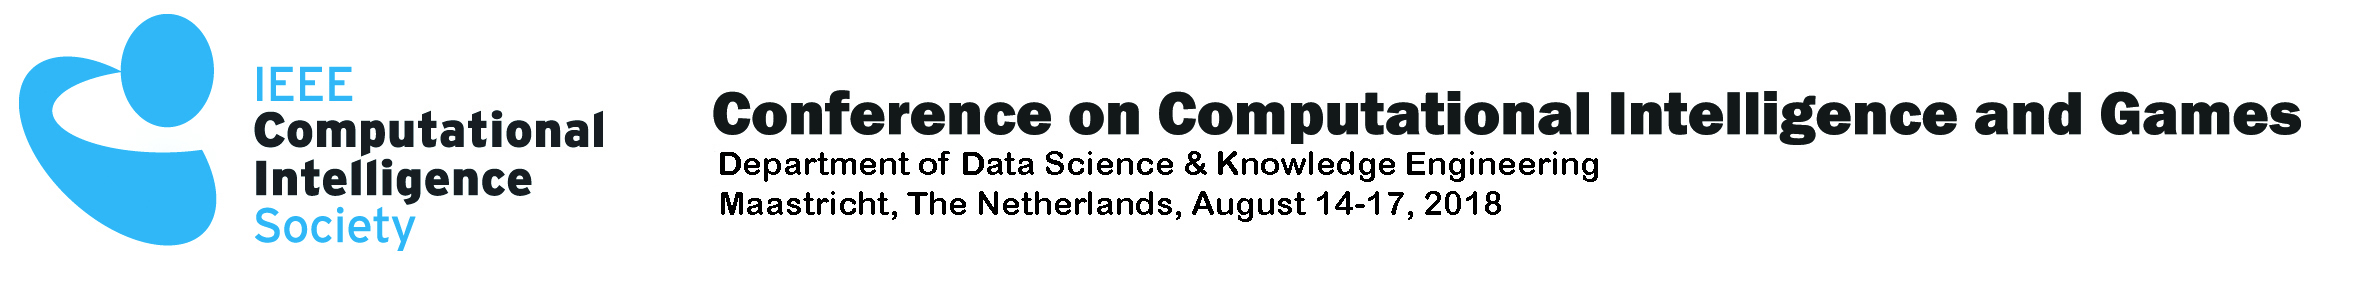 IEEE Conference on Computational Intelligence and Games, 14-17 August 2018, Maastricht (The Netherlands)